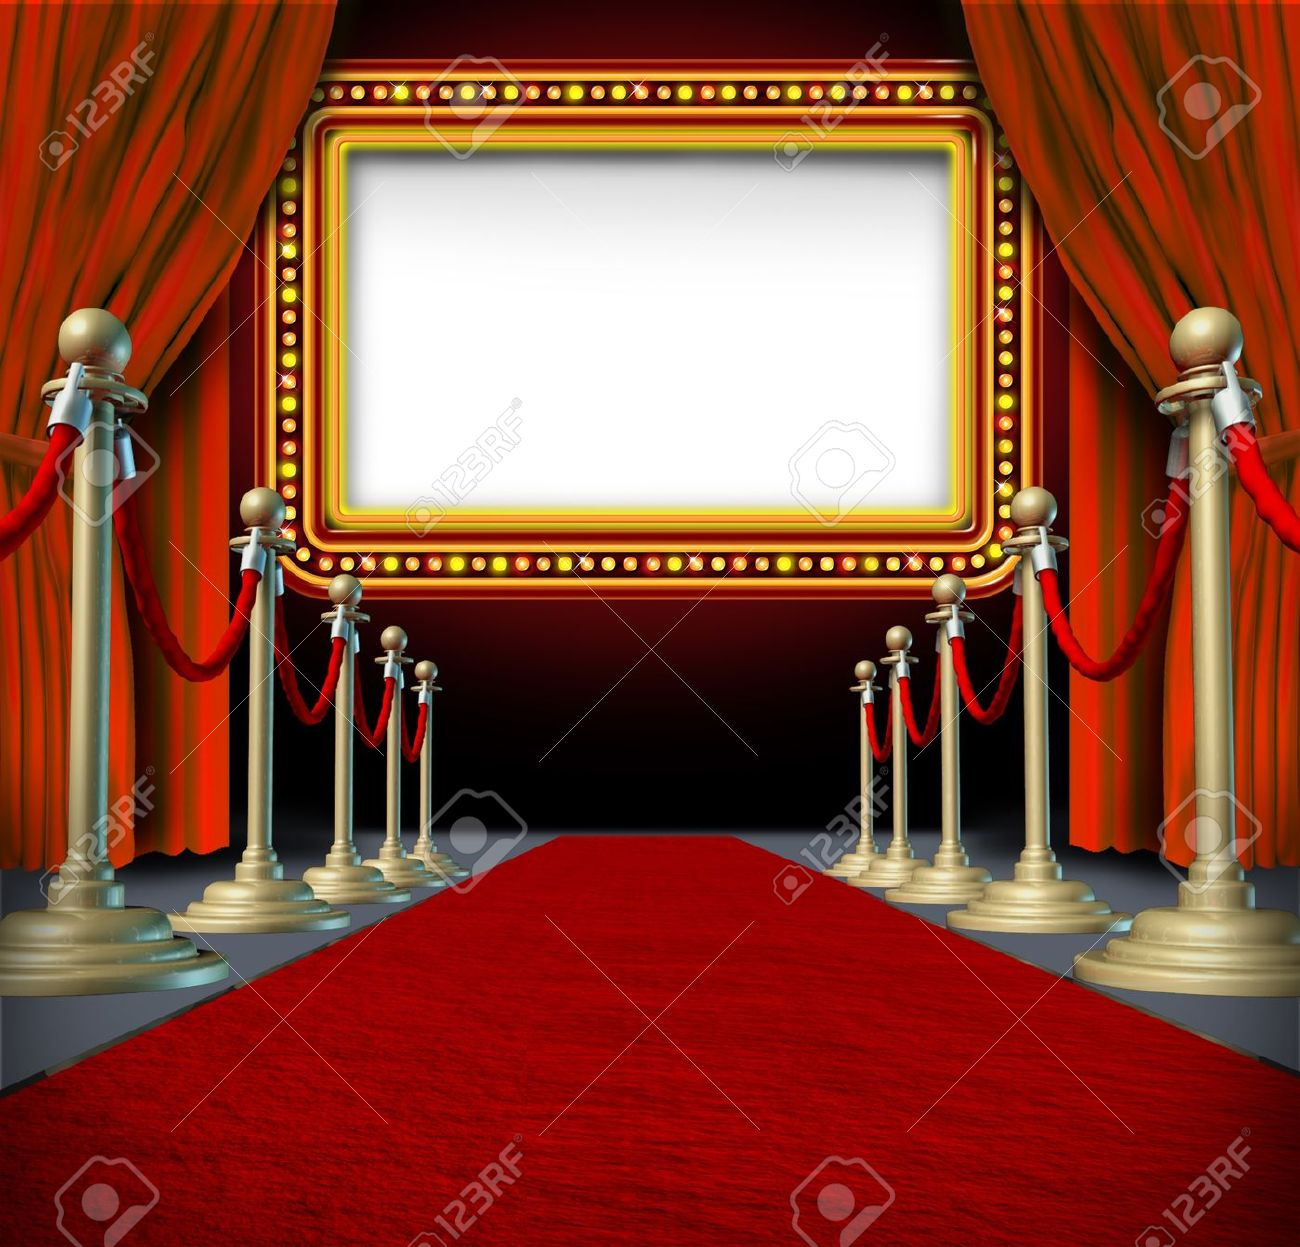 Movie and theatre marquee blank sign with elegant velvet curtains and a red carpet with gold barriers roped off and a billboard in lights as an icon of entertainment and important show announcement Stock Photo - 12882393